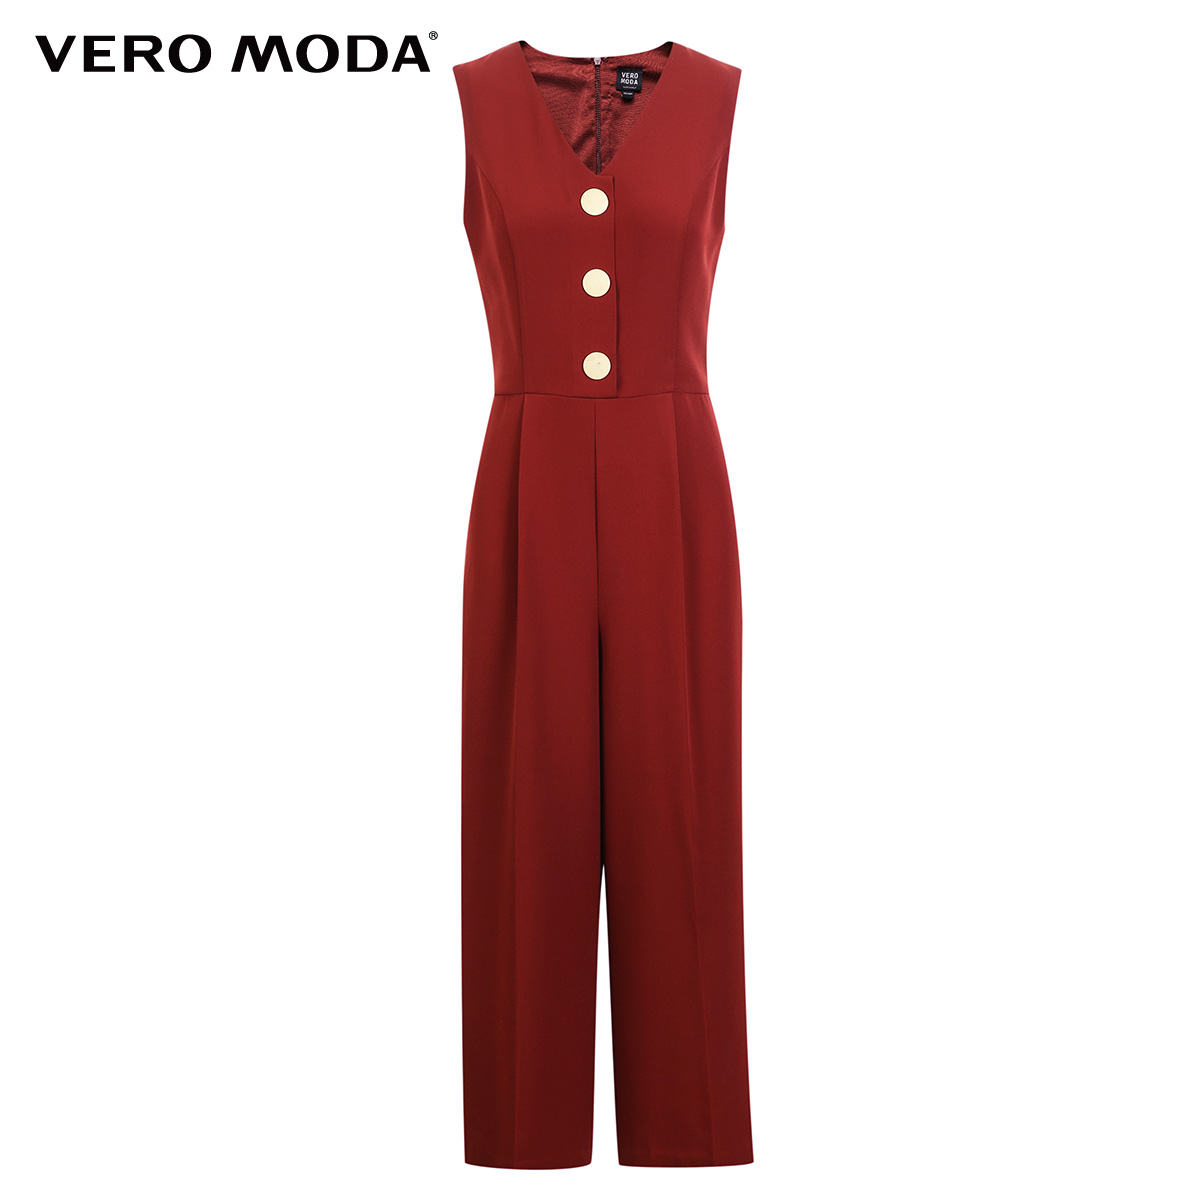 Vero Moda spring fashionable V-collar loose-leg cropped Jumpsuits for women |318144507 5